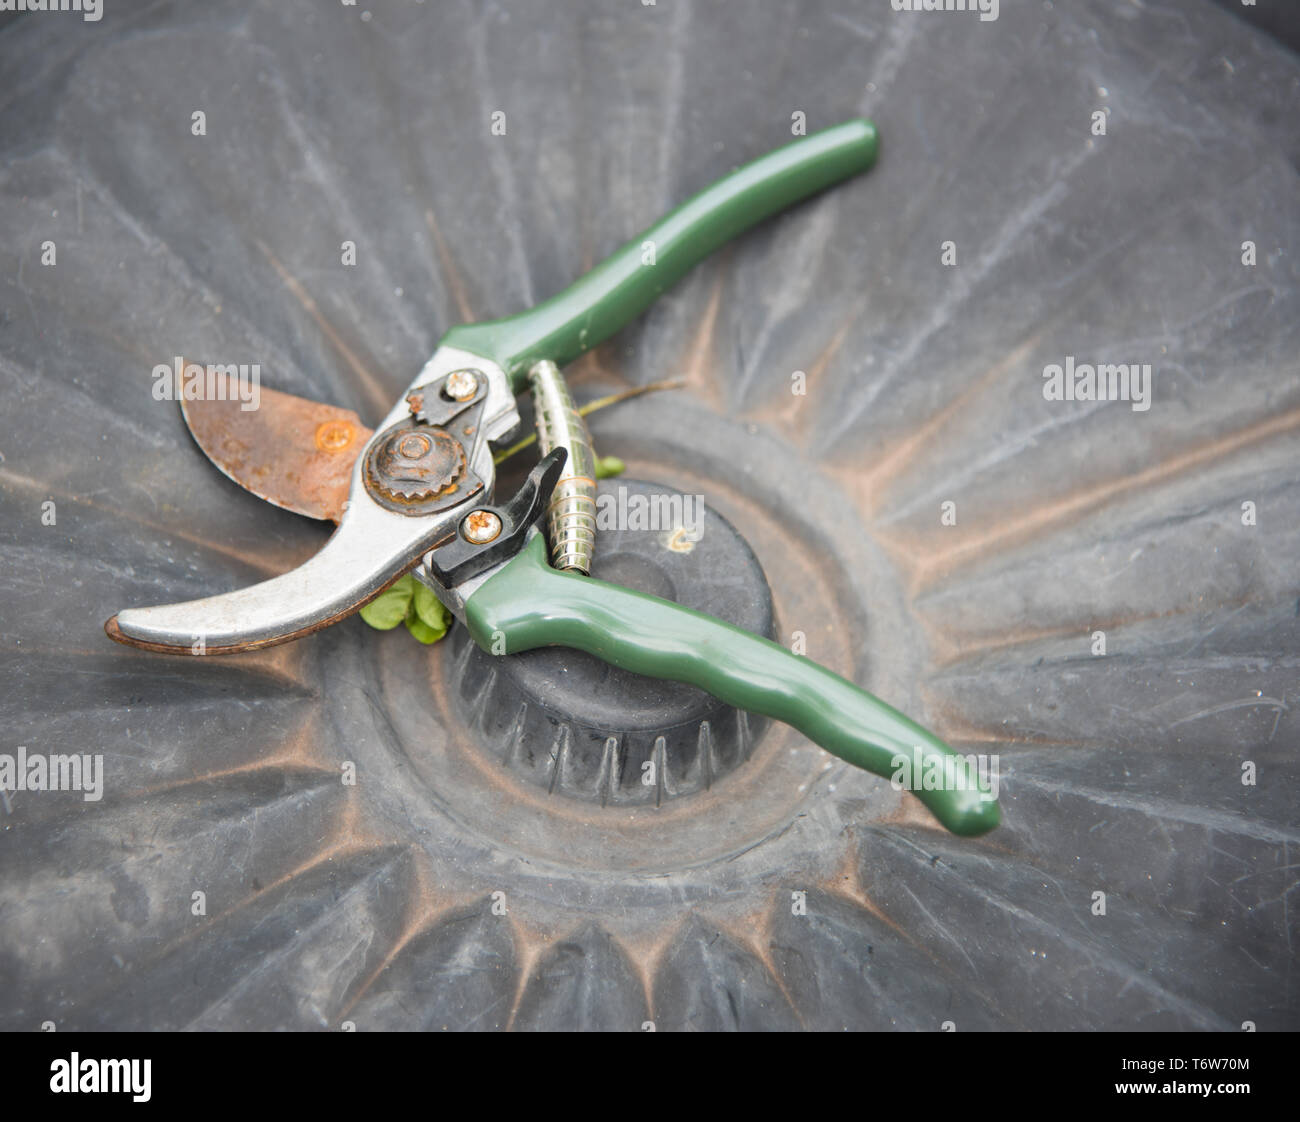 High angle view over gardening shears on garbage can lid. - Stock Image